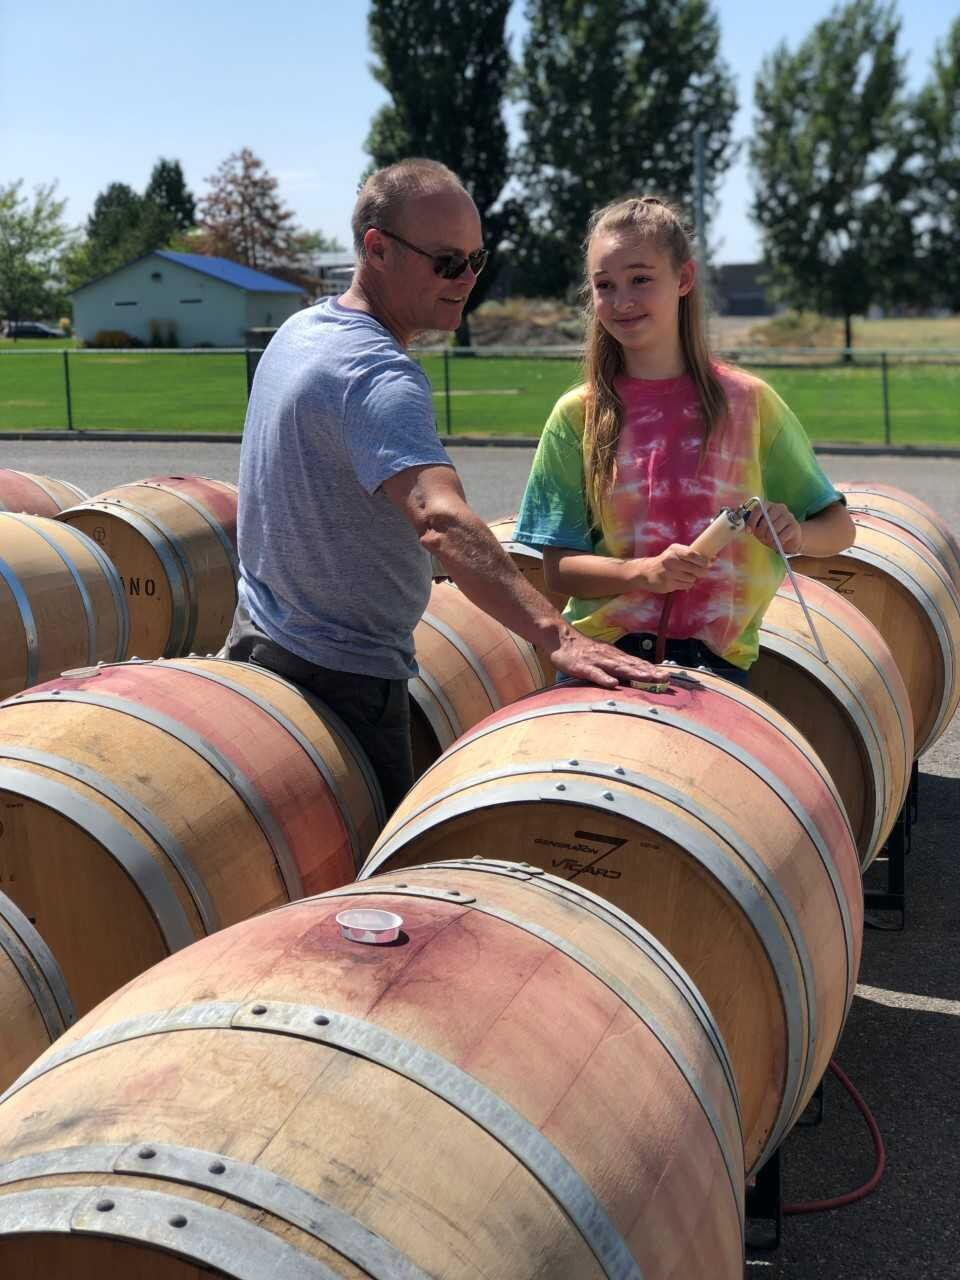 flint and daughter barrels.jpg